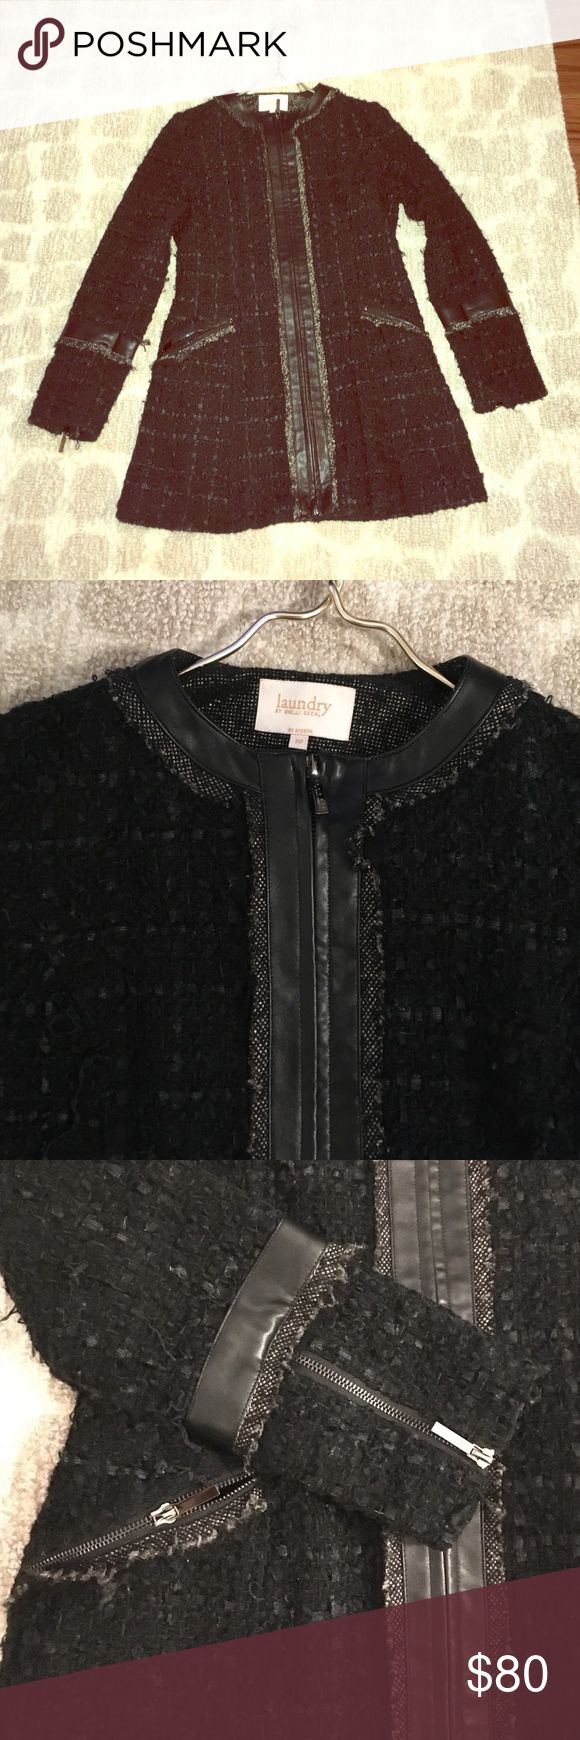 Stunning winter dress coat by Laundry Shelli Segal Black textured (Boucle/tweed) dress coat, wool blend and silk lined with leather trim. Purchased last year from Nordstrom (Laundry by Shelli Segal) but am only selling because it is too big. Laundry by Shelli Segal Jackets & Coats